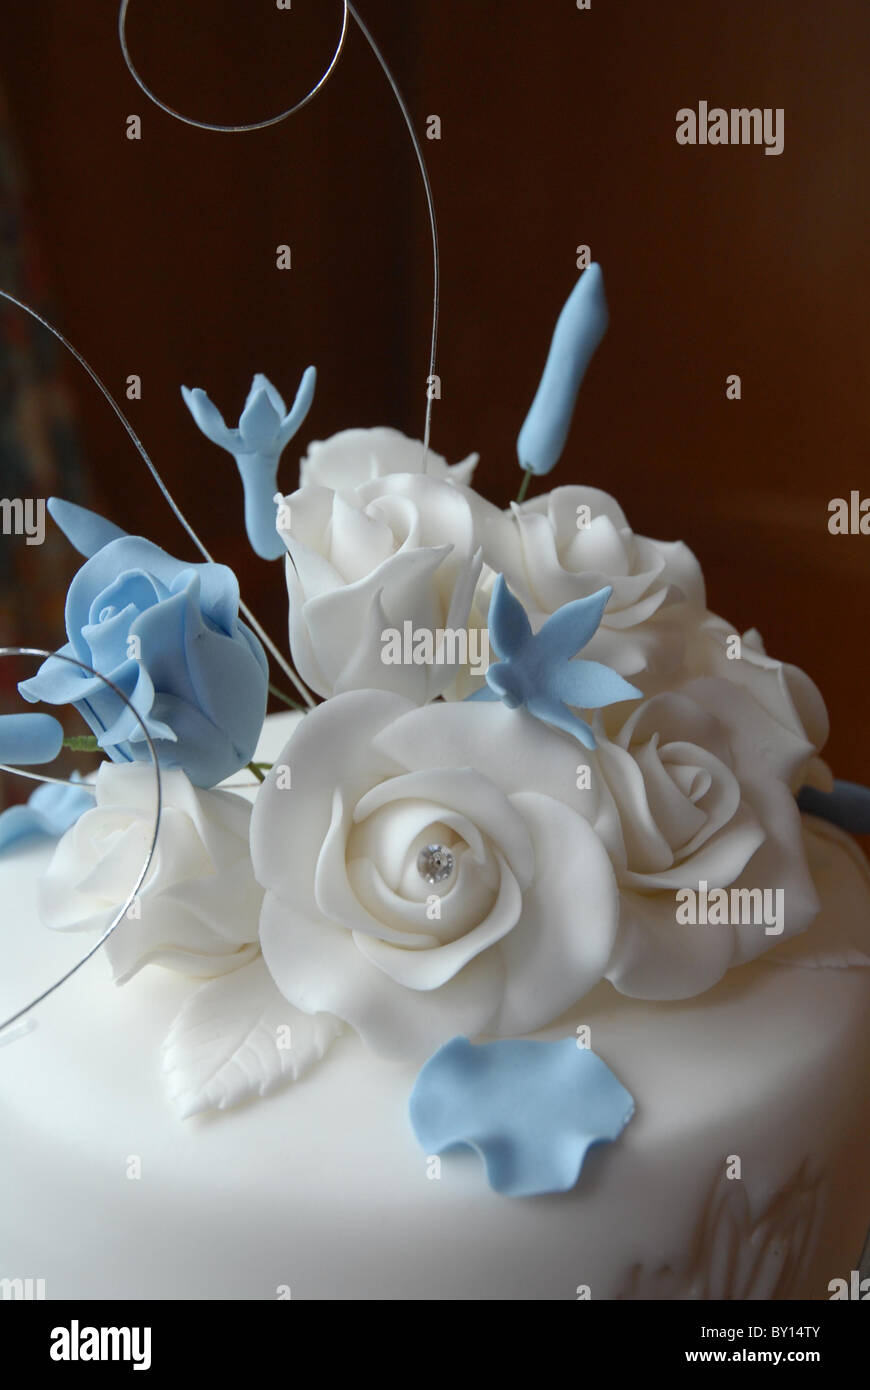 General Close Up Of A Wedding Cake Topper Baby Blue And White Roses Made From Icing On At Reception